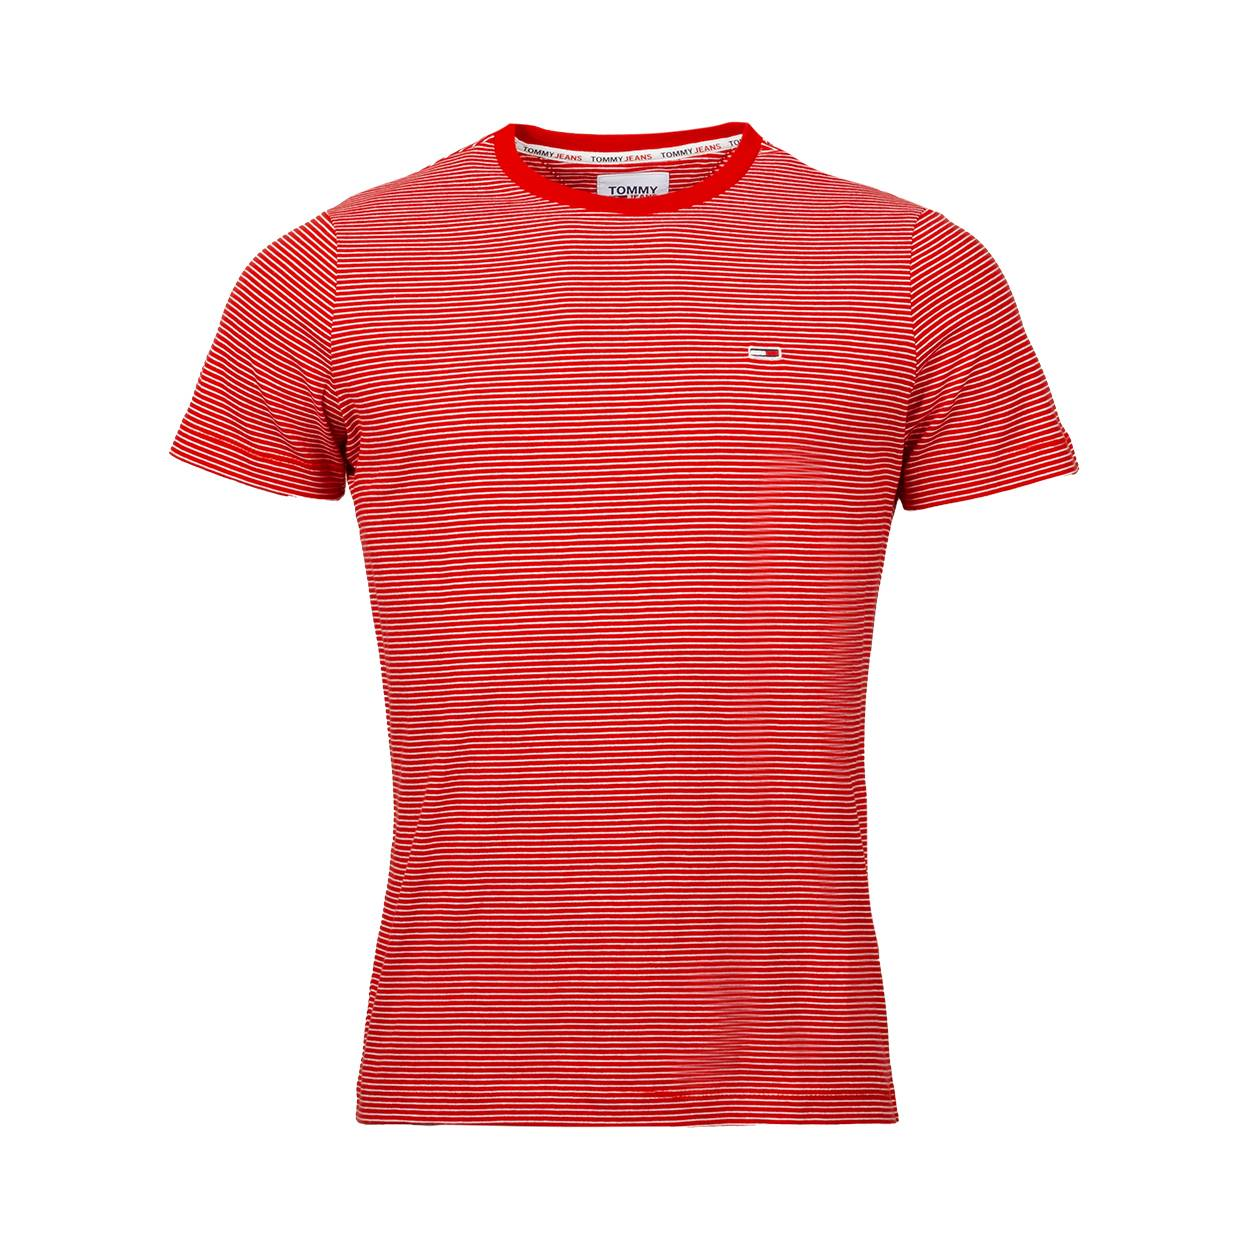 Tommy Jeans Tee-shirt col rond Tommy Jeans Essential en coton bio rouge à rayures blanches - ROUGE BLANC - S